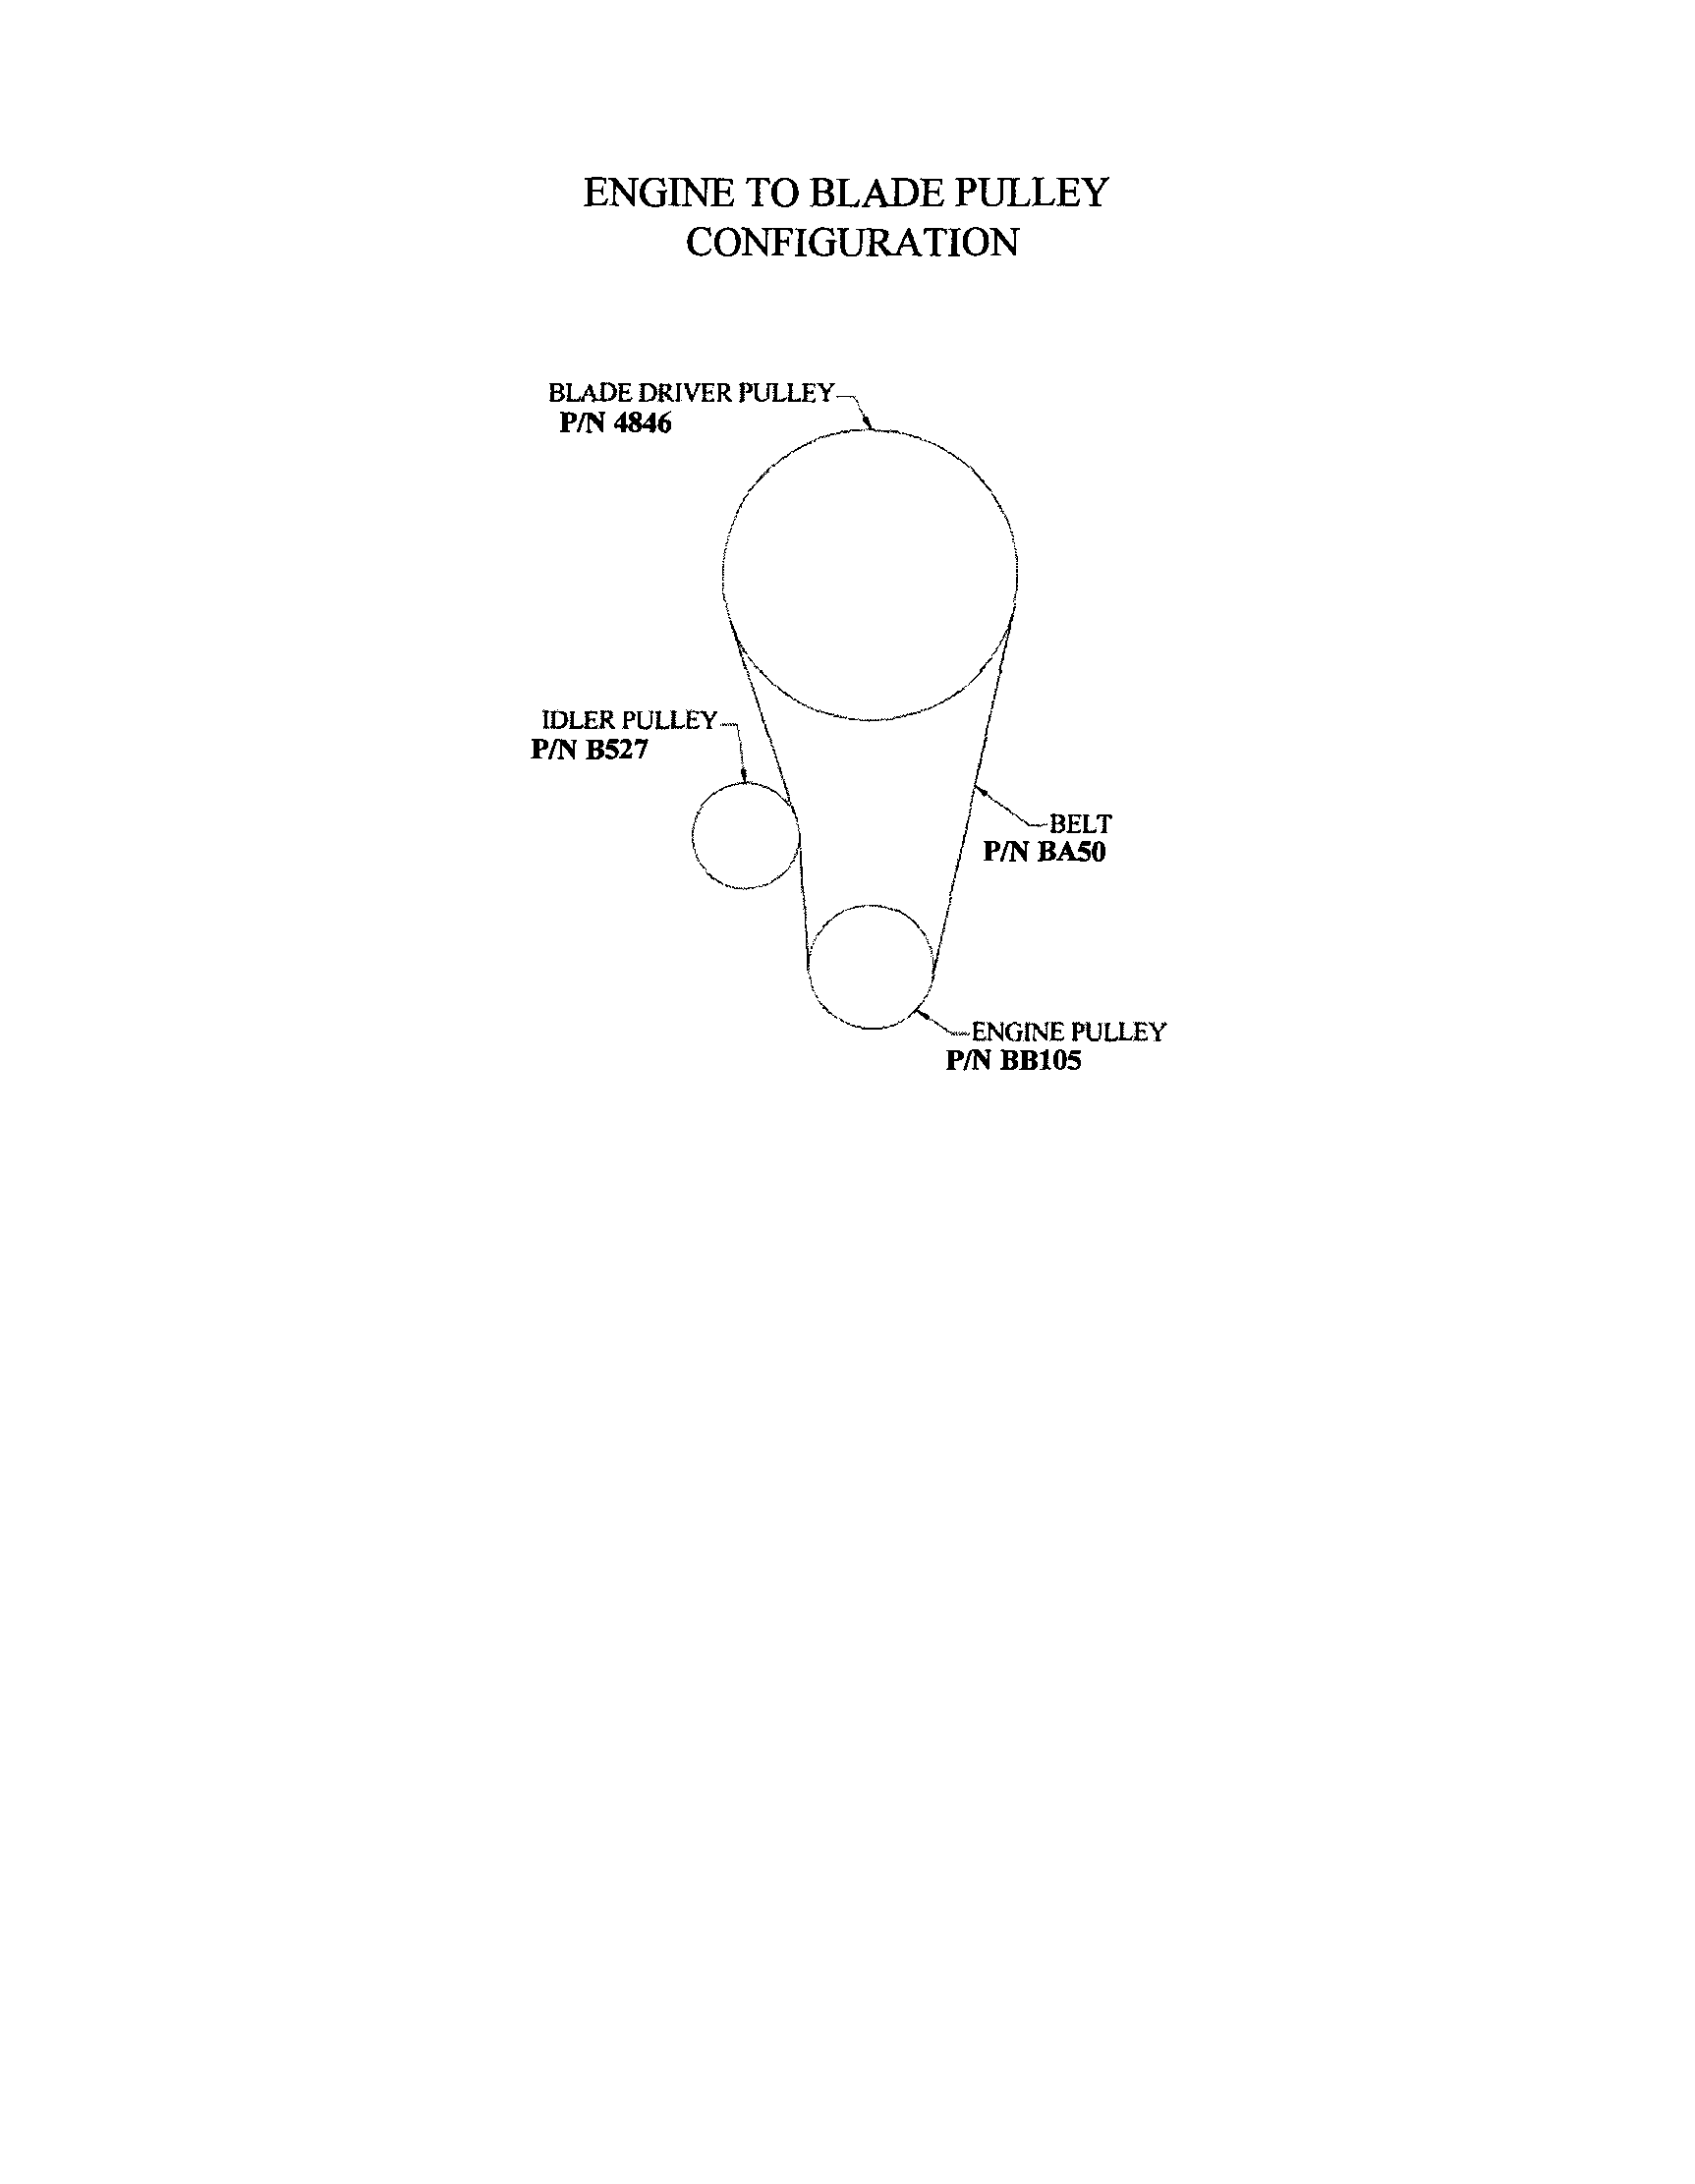 Swisher RTB115441 engine to blade pulley diagram